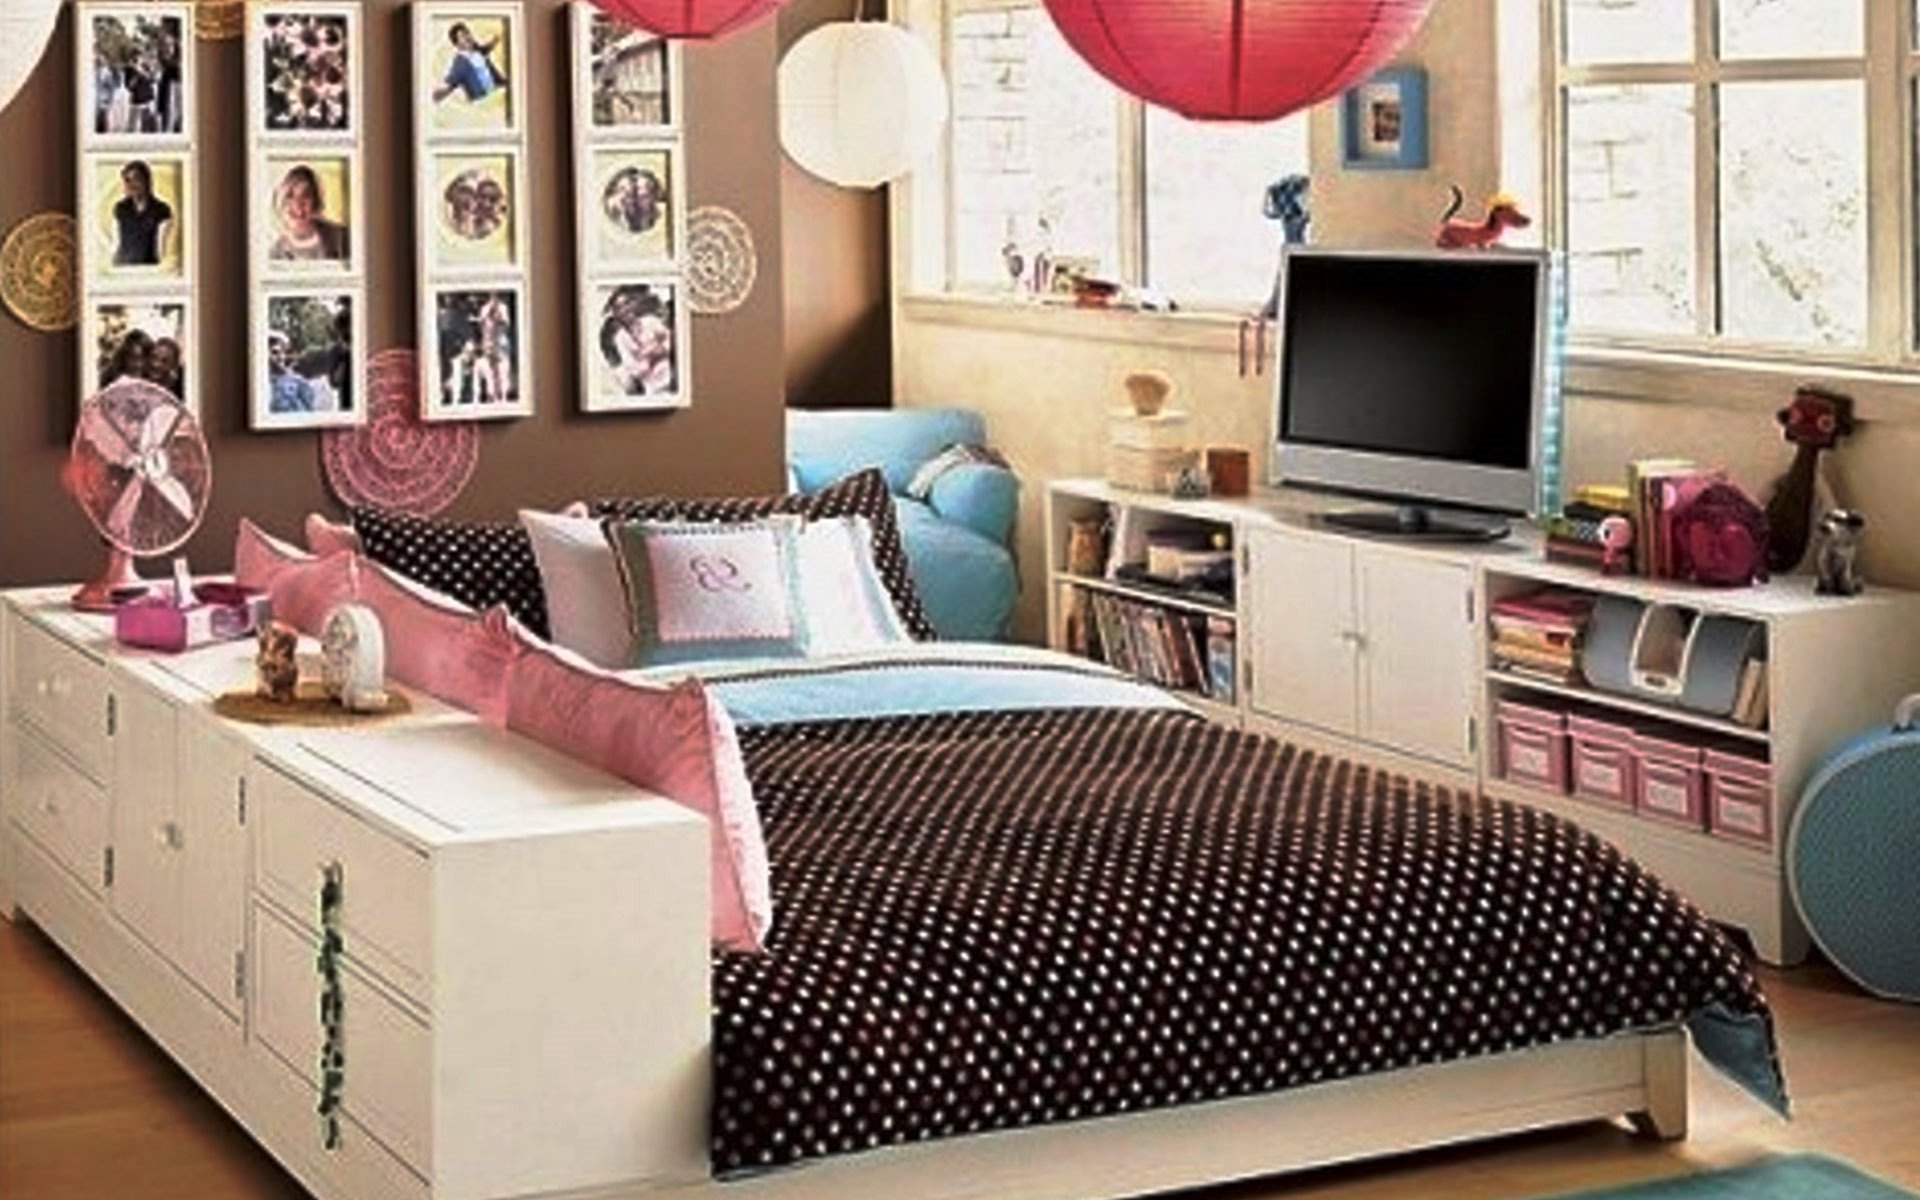 Inexpensive Decorating Ideas for Kids  Bedrooms   Best Home Server Knowledge Related to Inexpensive Decorating Ideas for Kids  Bedrooms